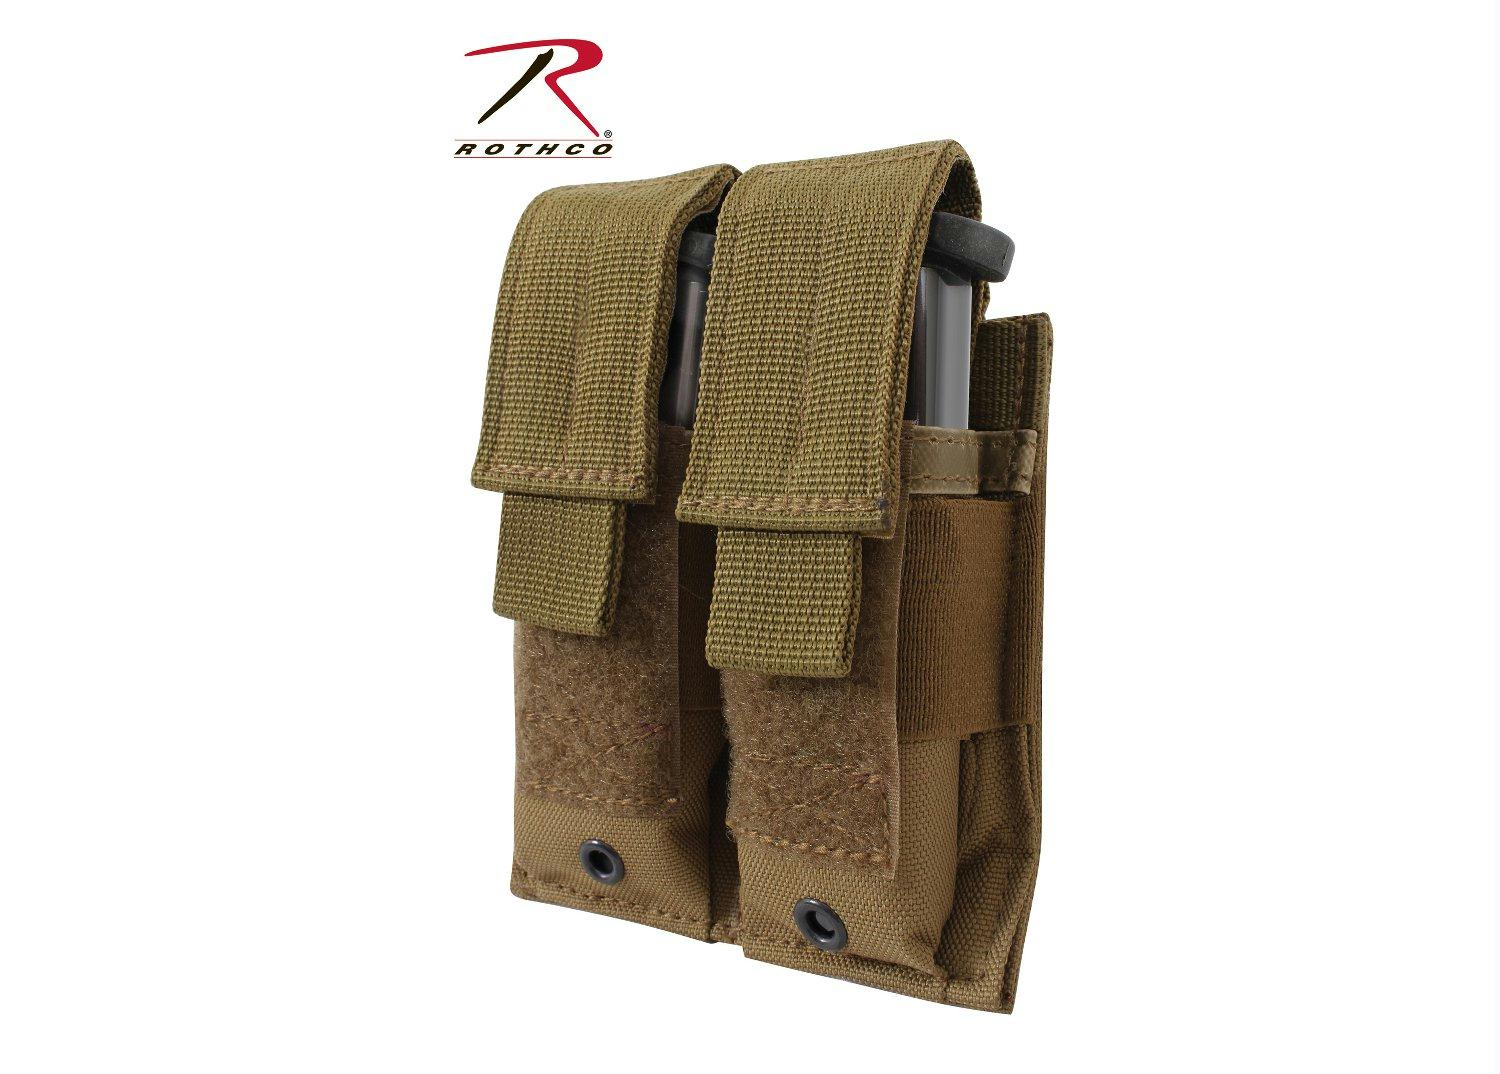 Rothco Double Pistol Mag Pouch - Molle - Coyote Brown